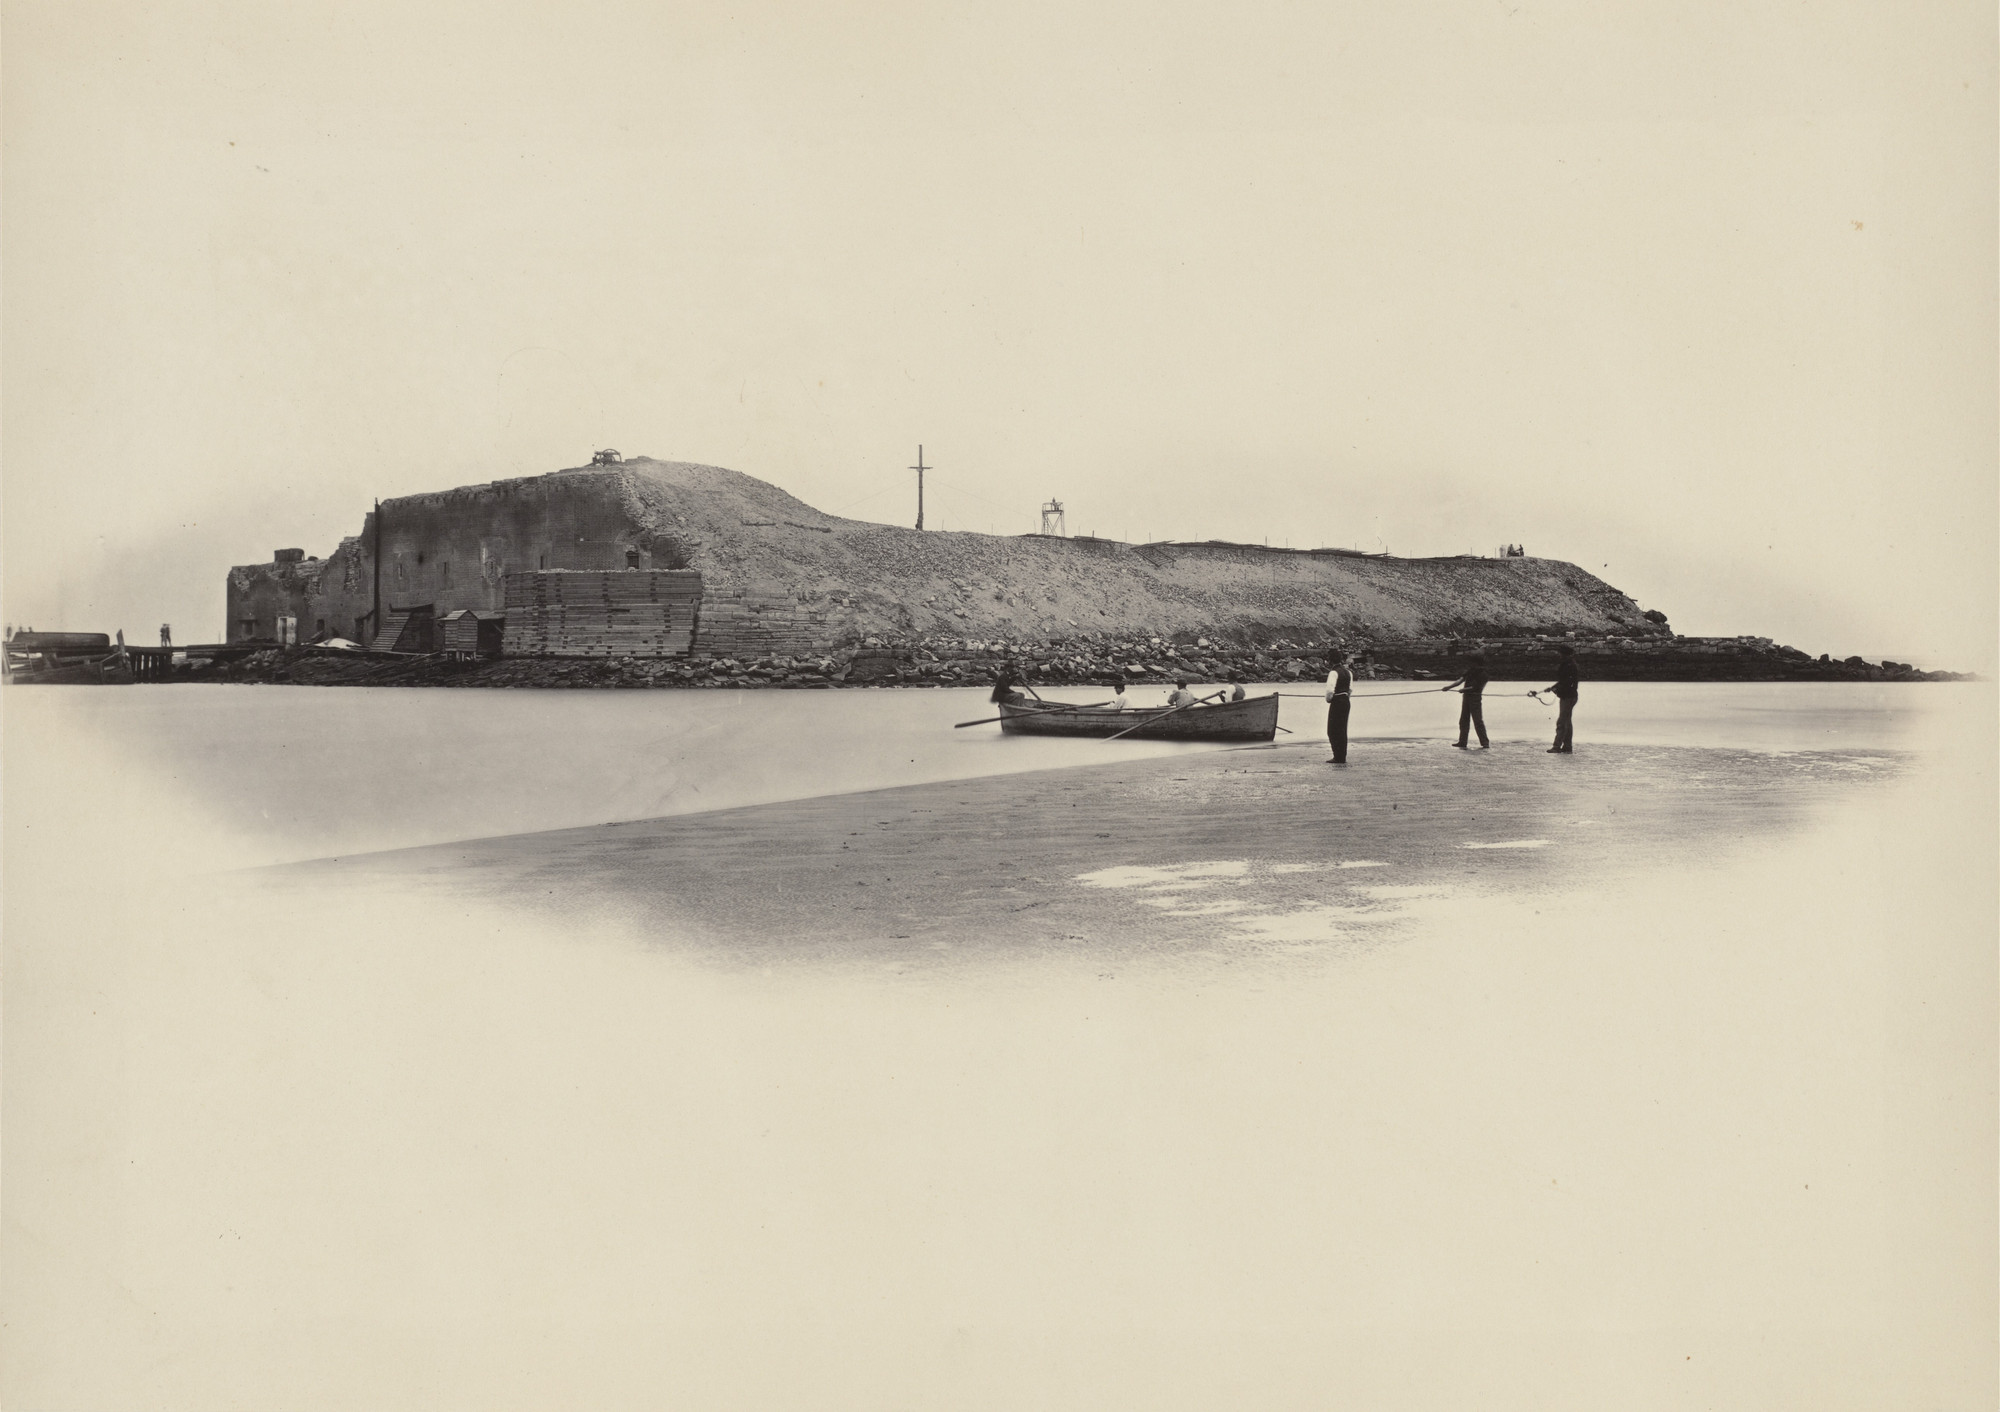 George Barnard. Fort Sumter from the album Photographic Views of Sherman's Campaign. 1864-65